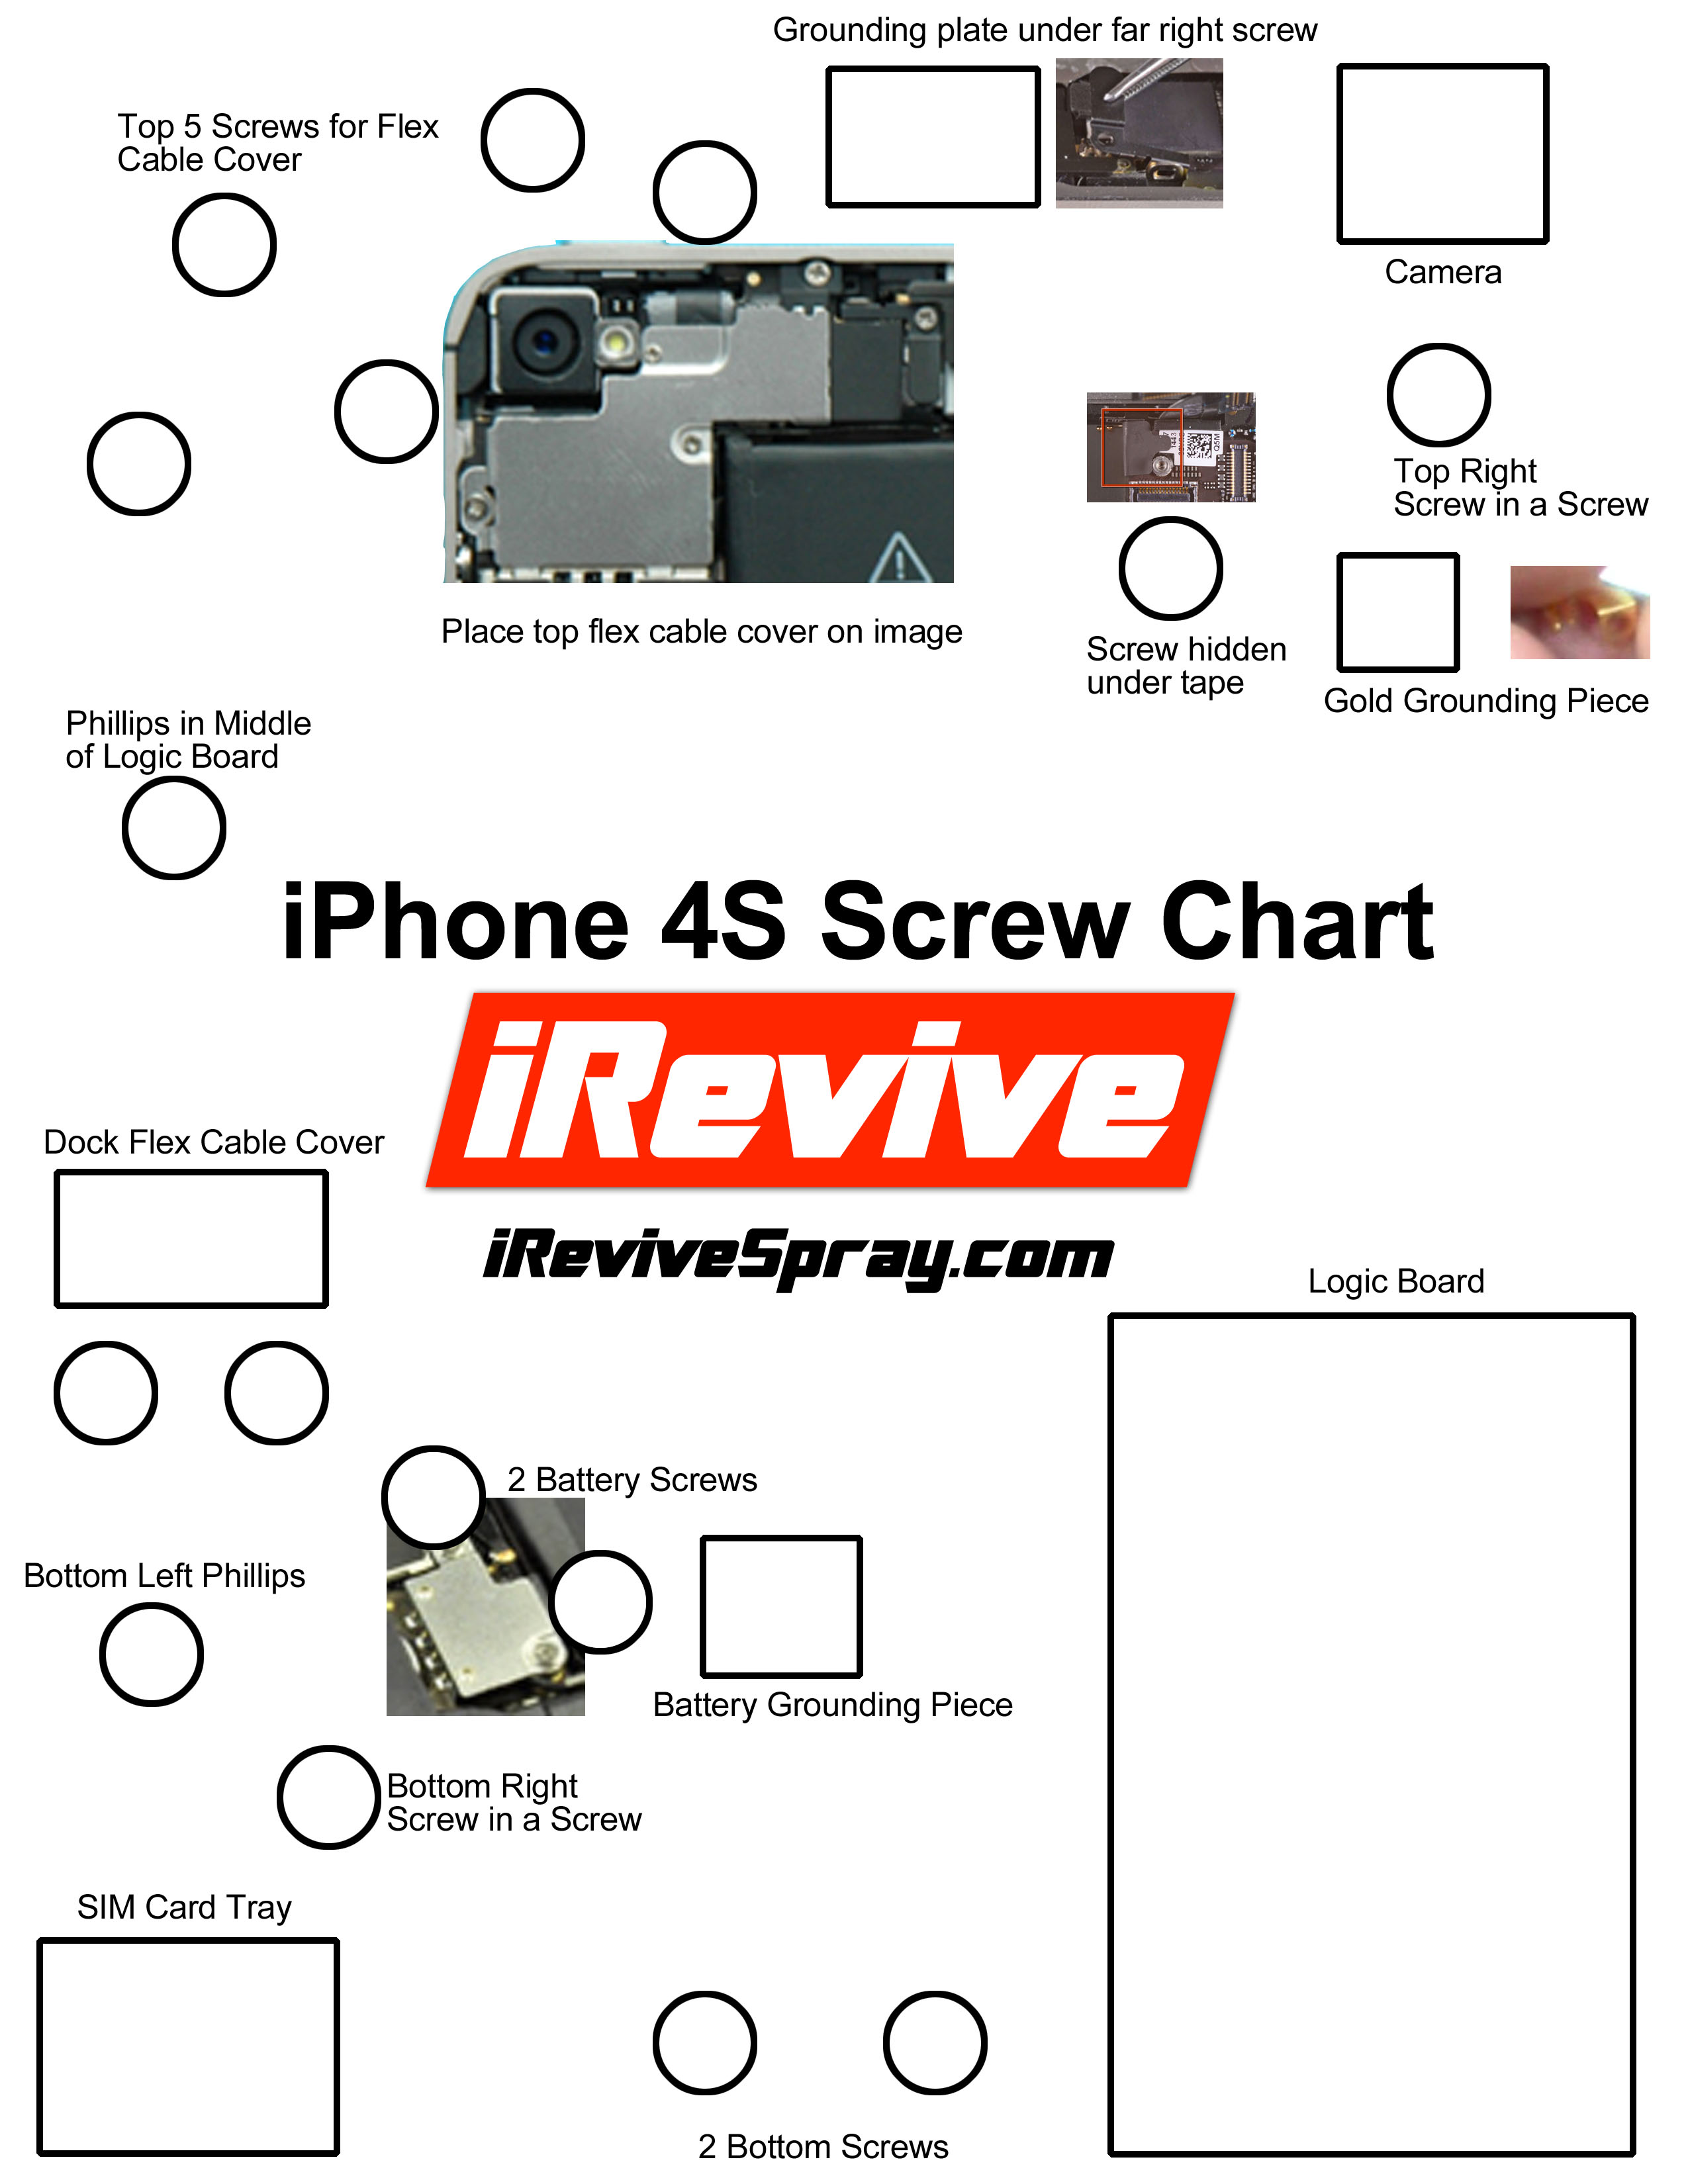 iphone 4s screw chart diagram sheet template